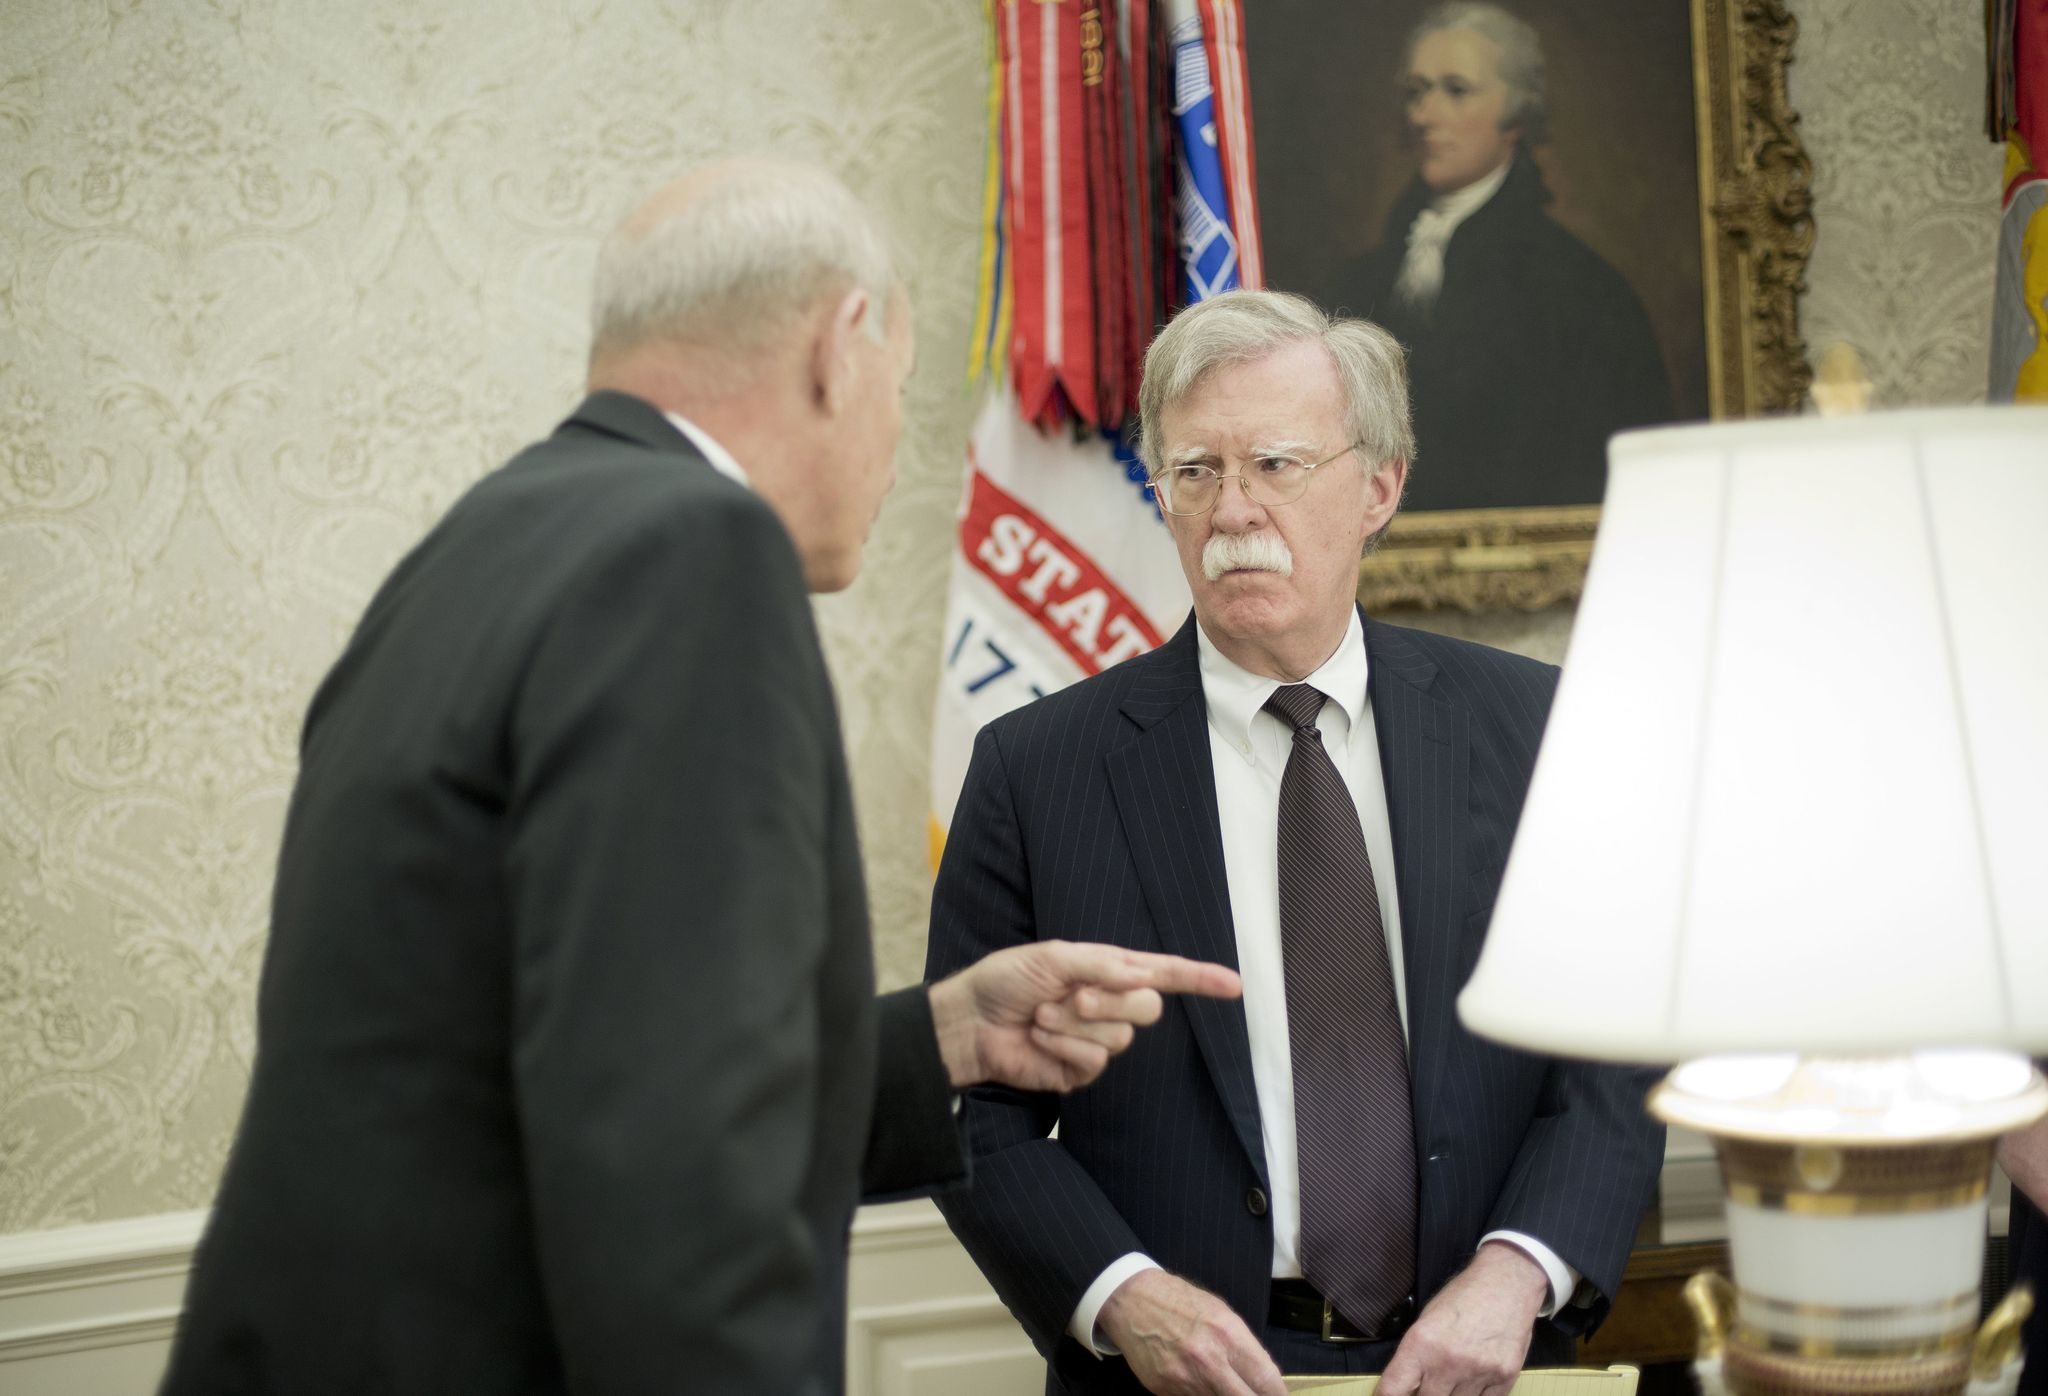 John Kelly, John Bolton get into heated argument outside Oval Office